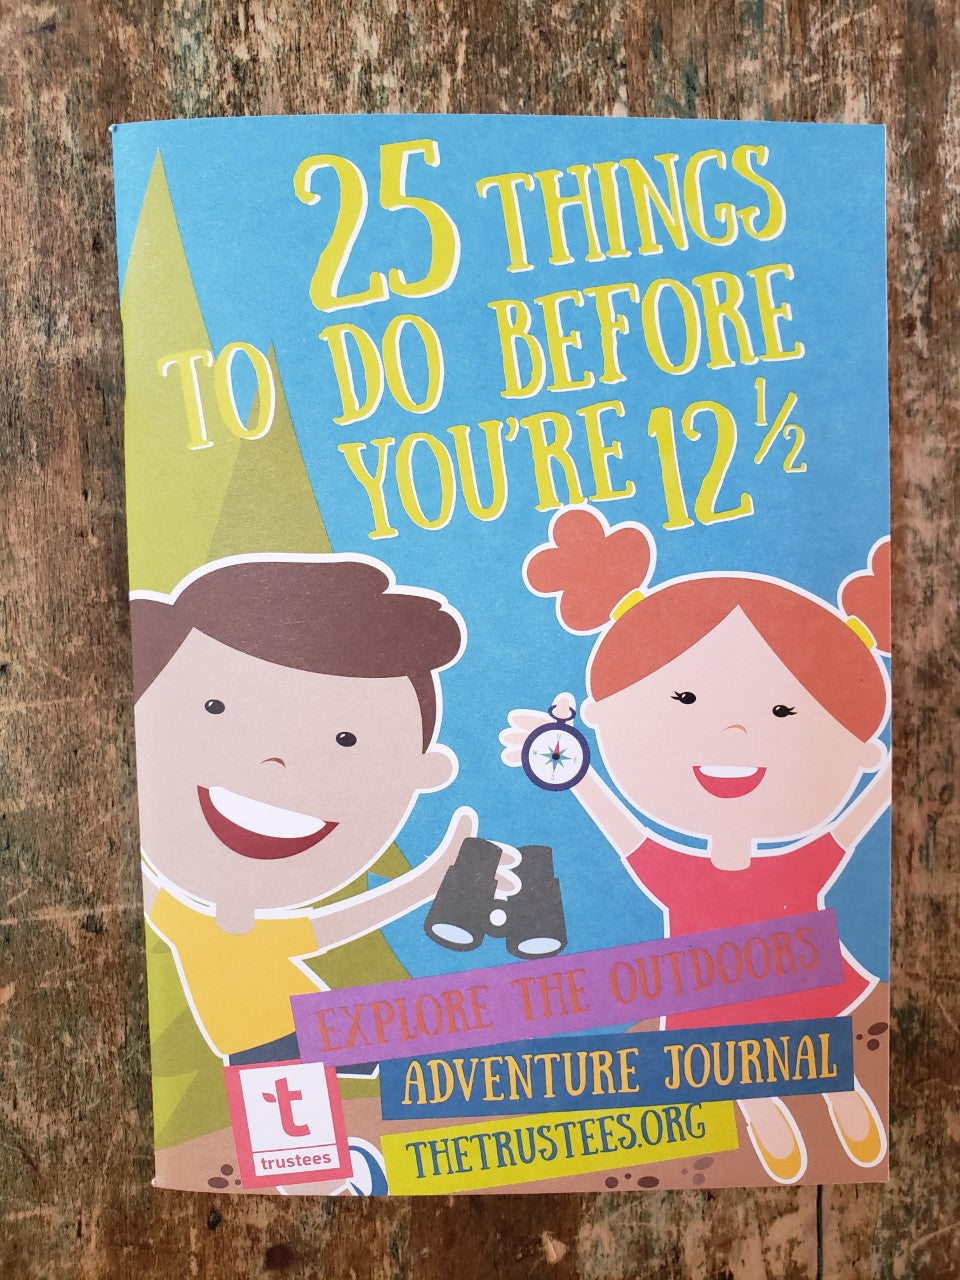 25 Things To Do Before You're 12 1/2